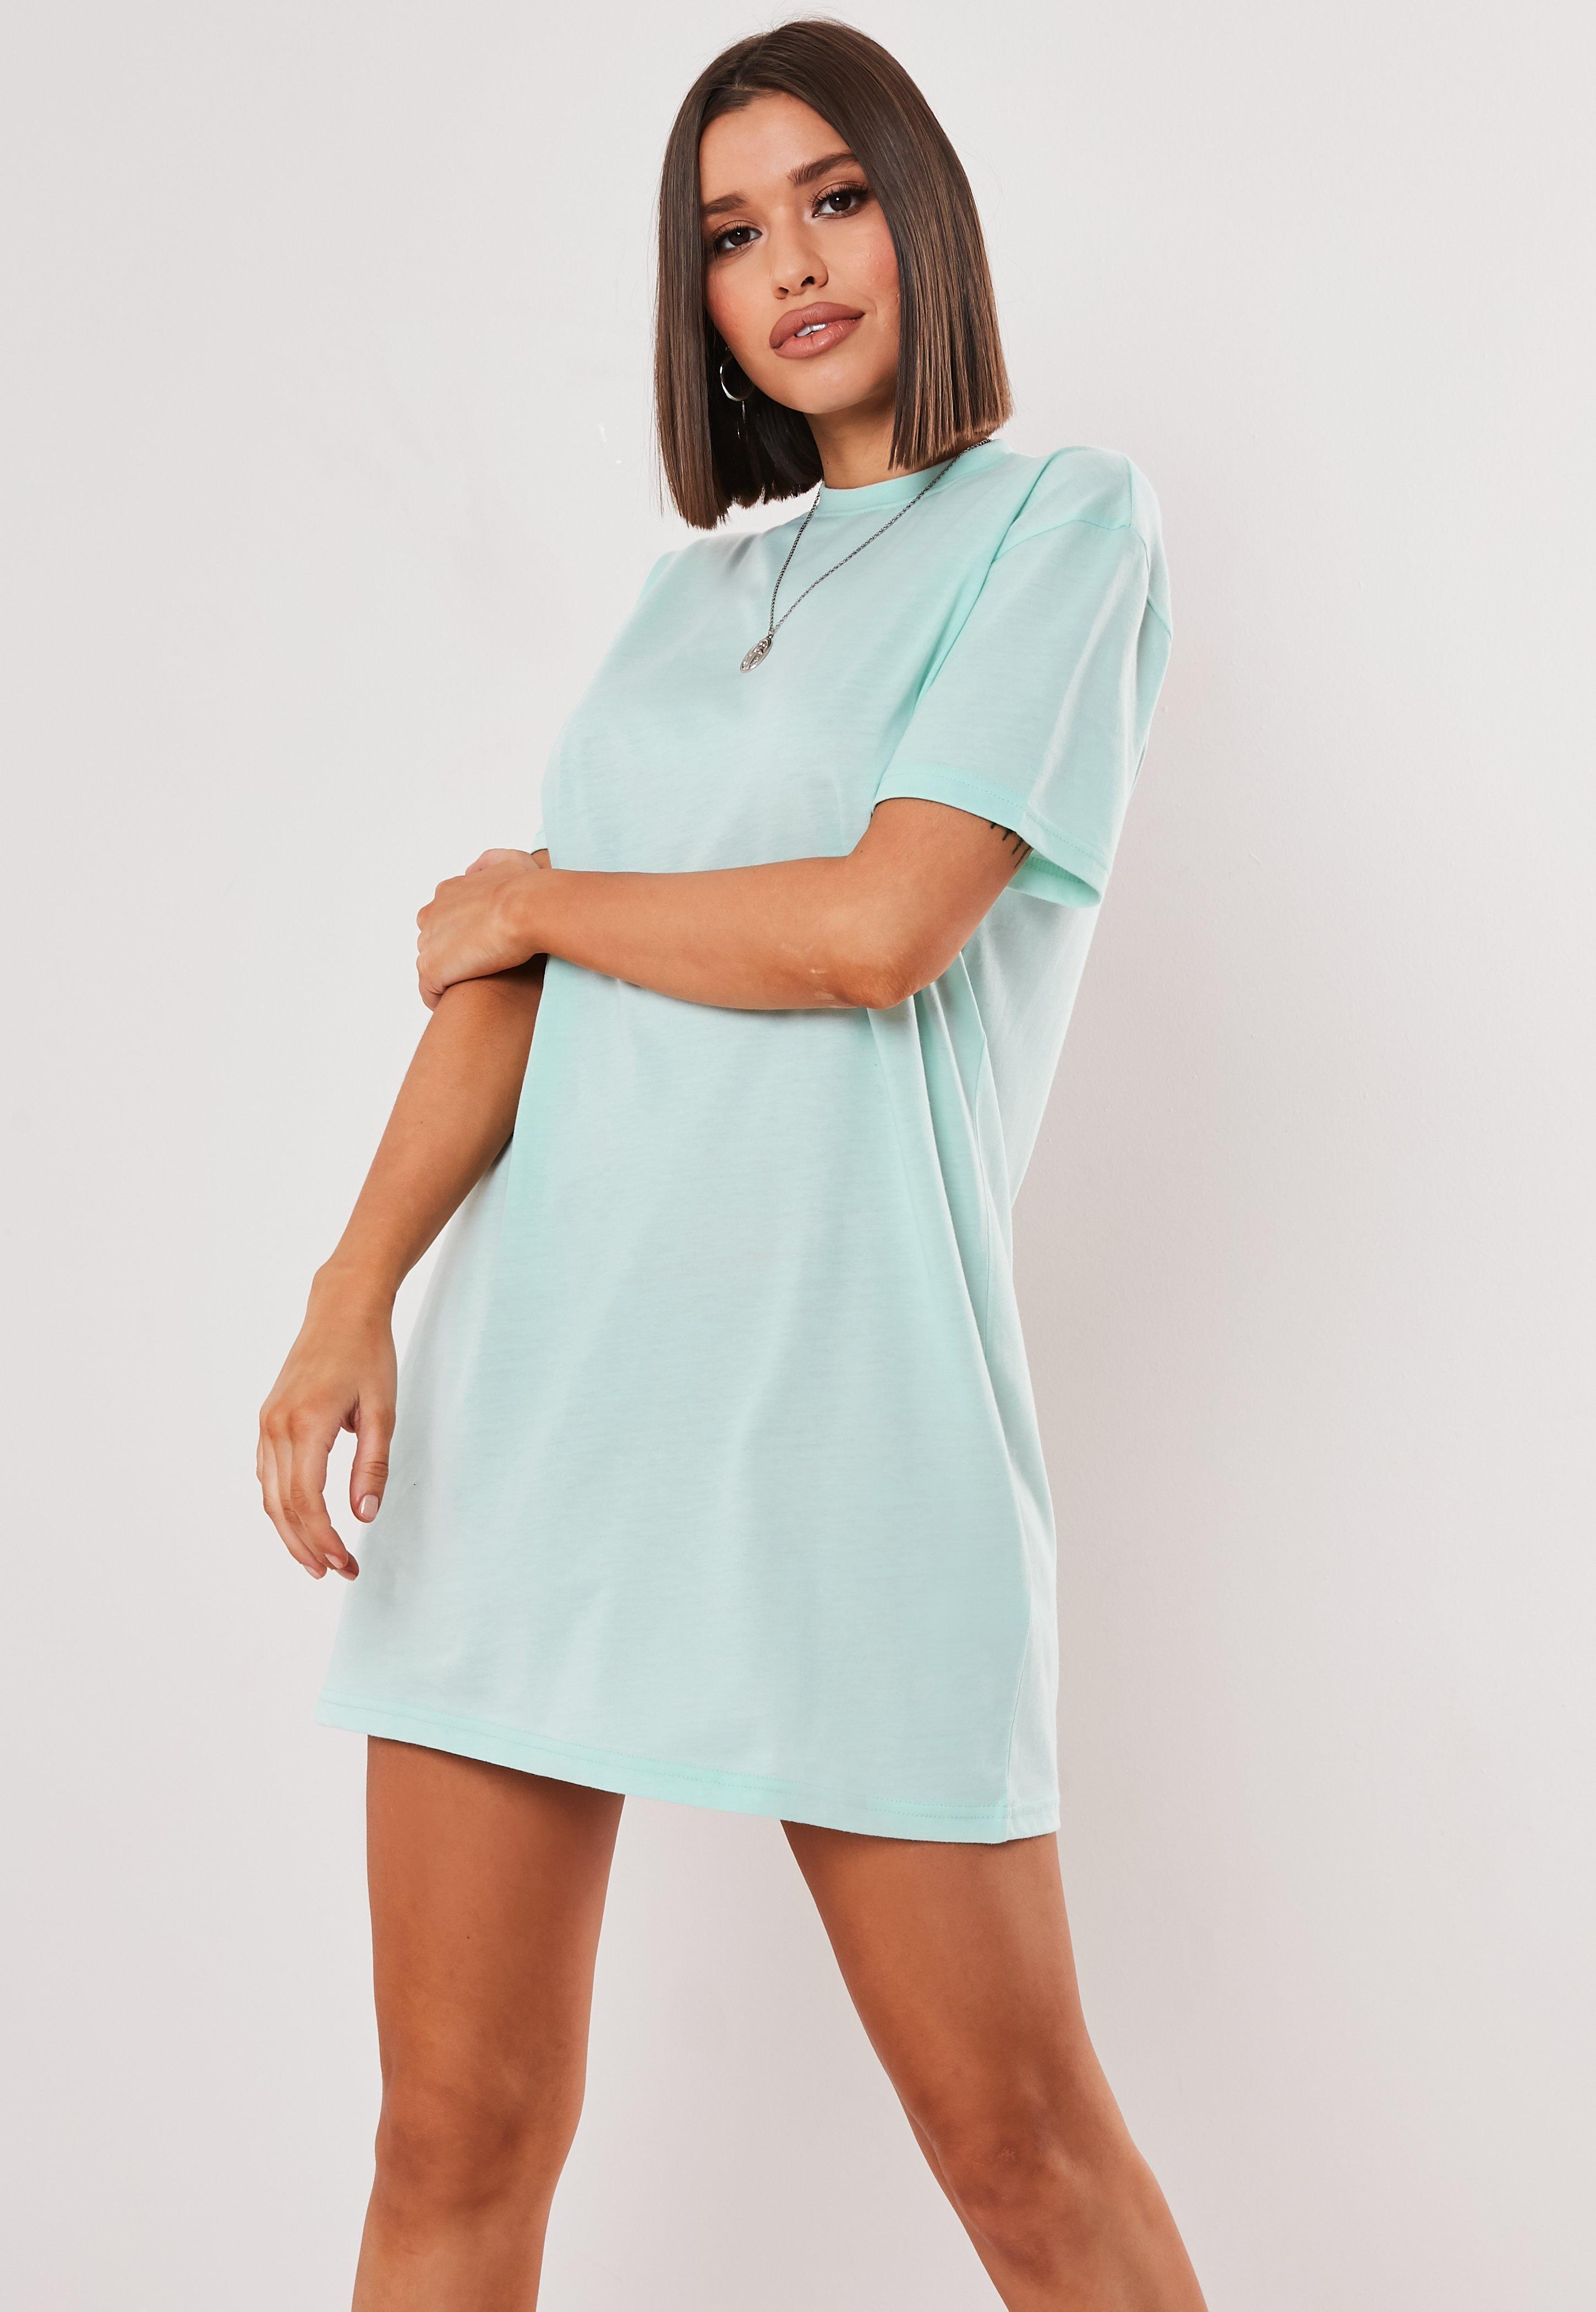 15250137eaf9 Blue Dresses | Cobalt & Baby Blue Dresses - Missguided